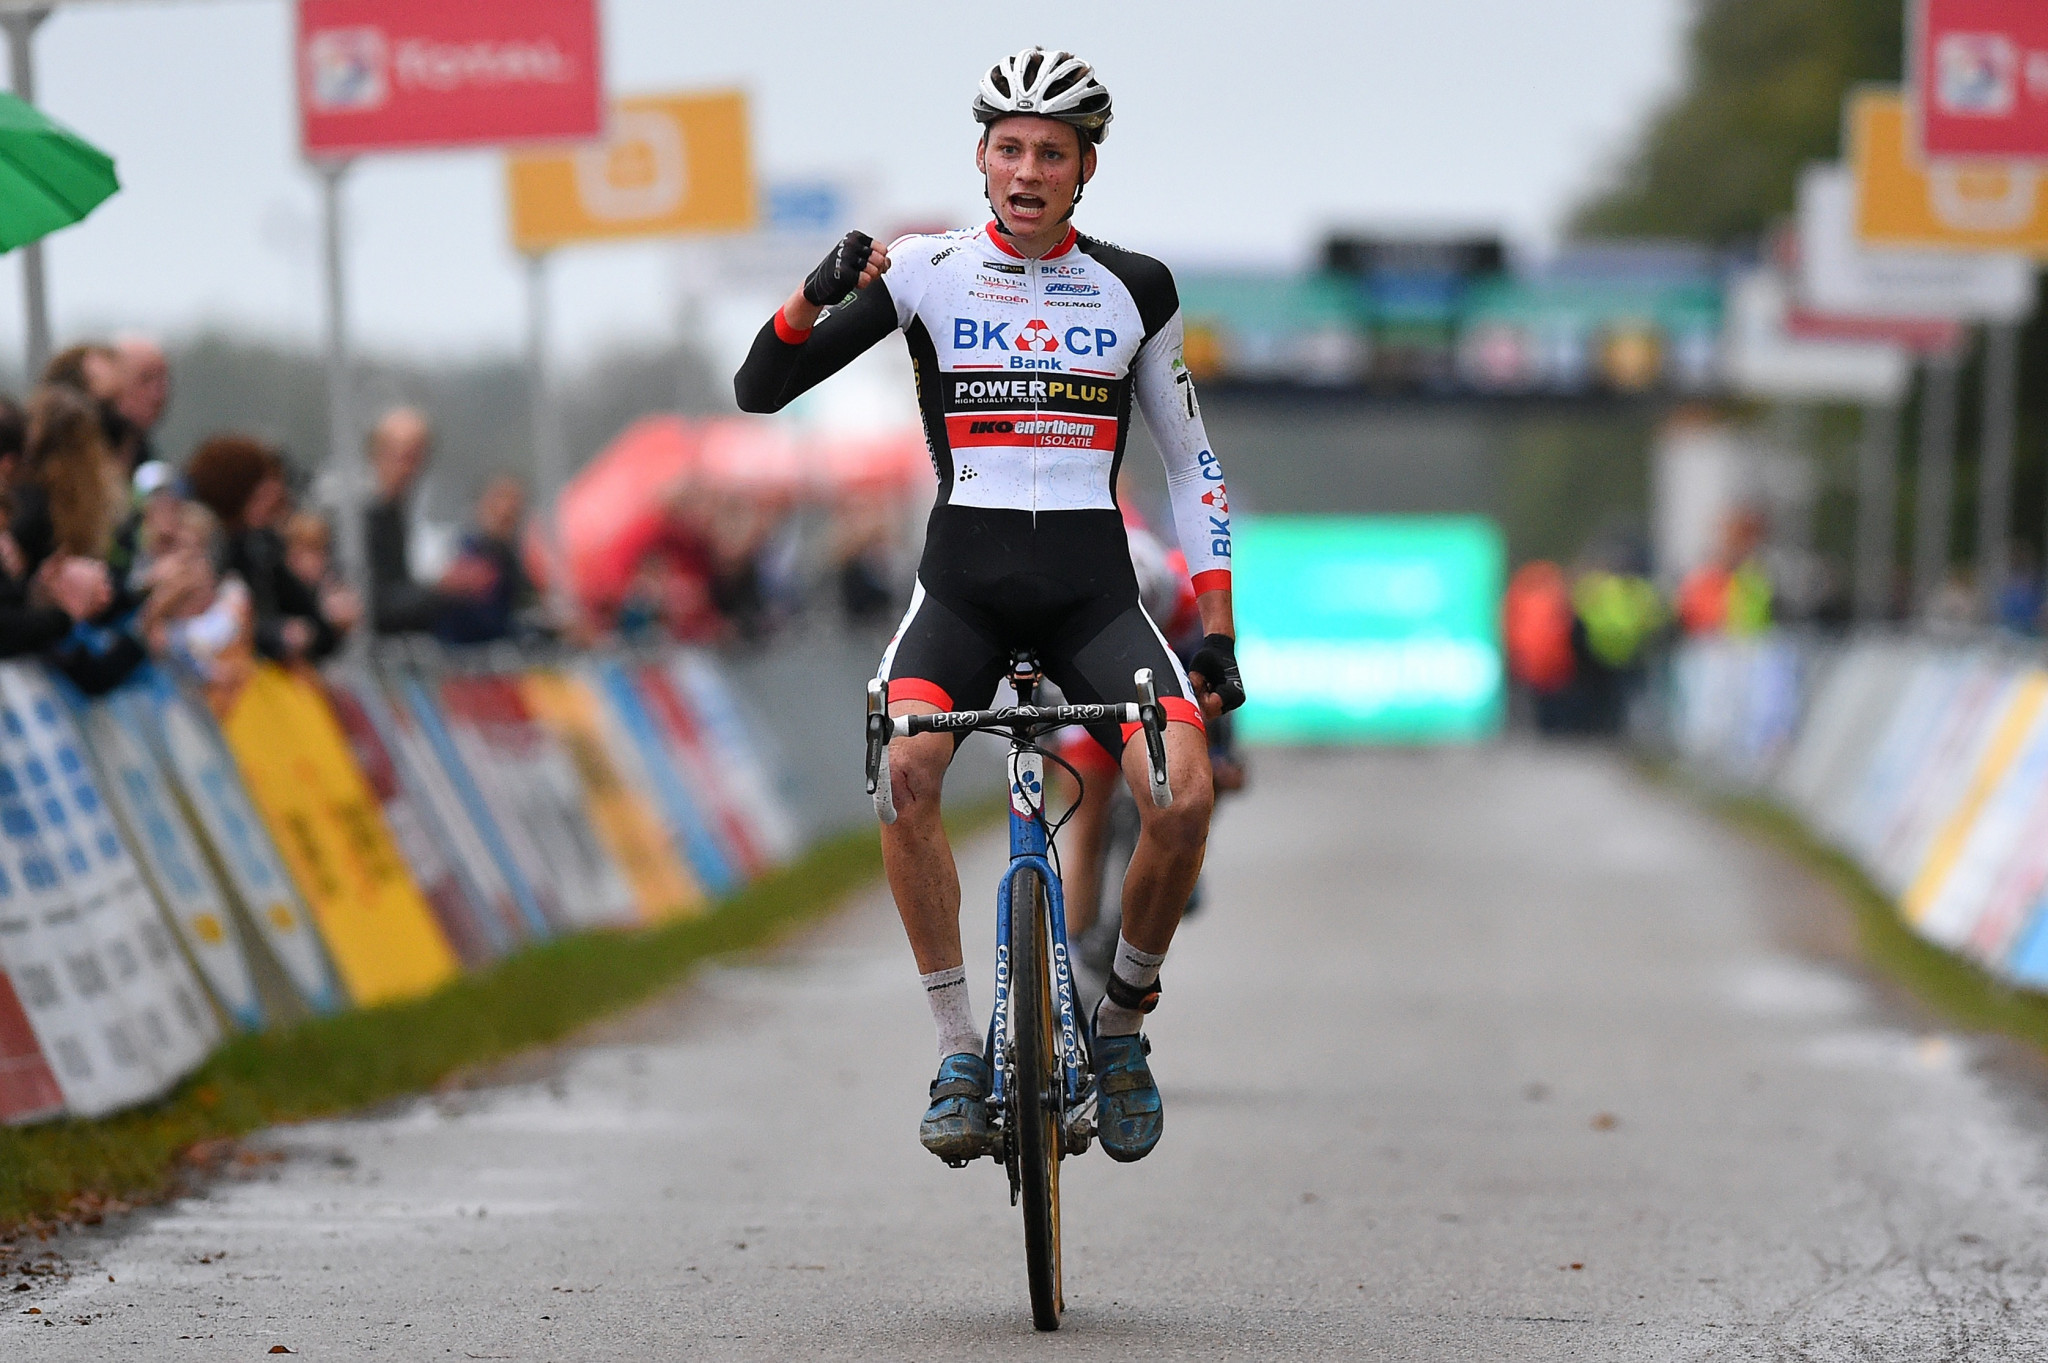 Few betting against van der Poel to win 2019 UCI Cyclo-Cross World Championships